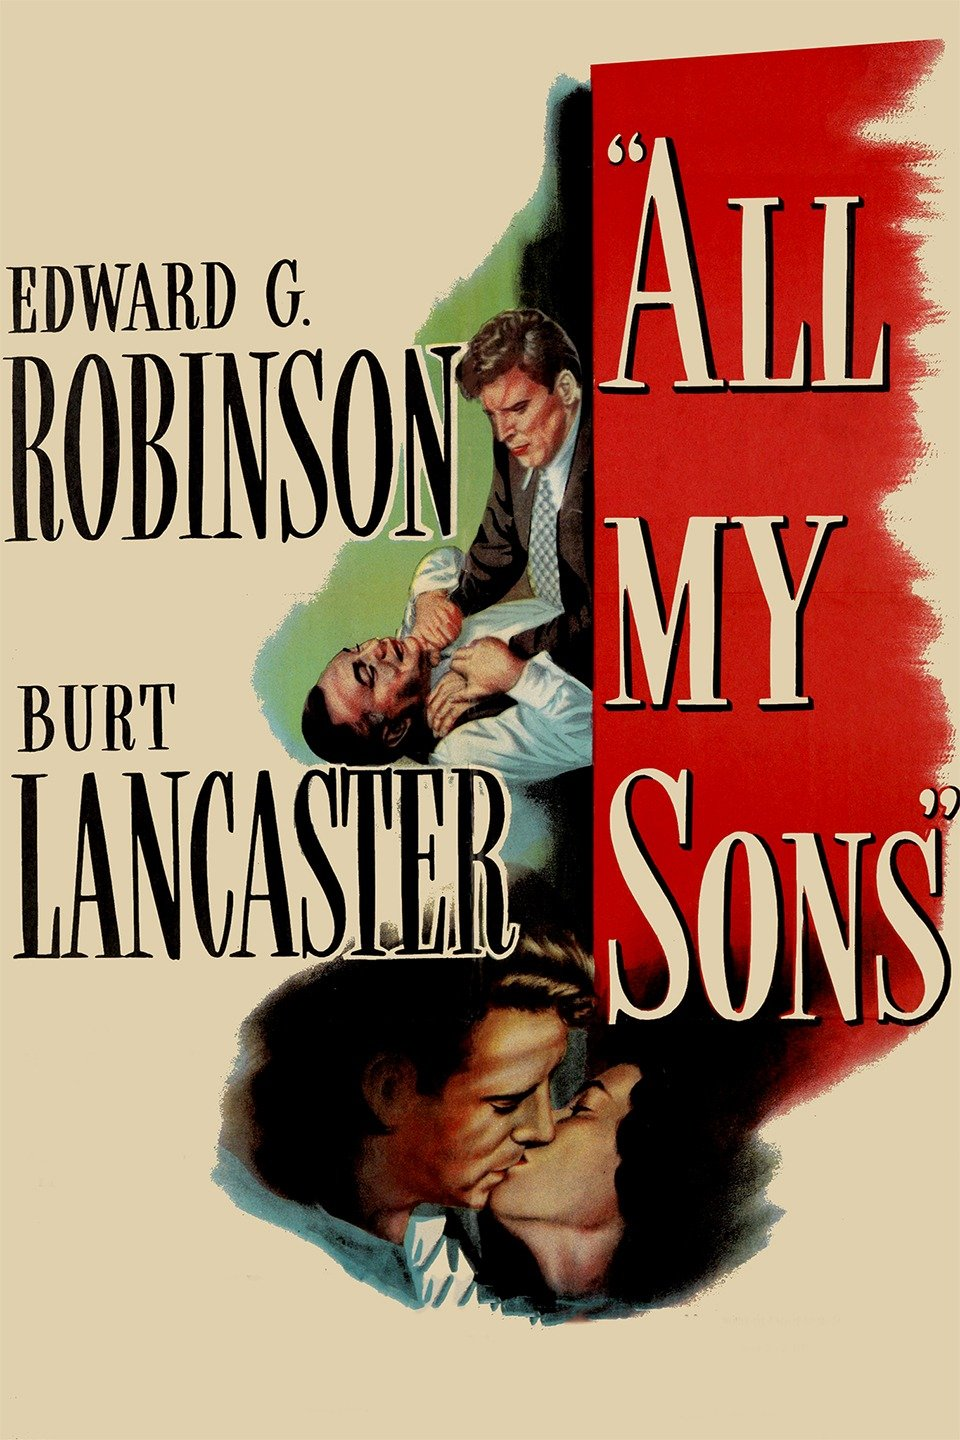 Image result for all my sons film images